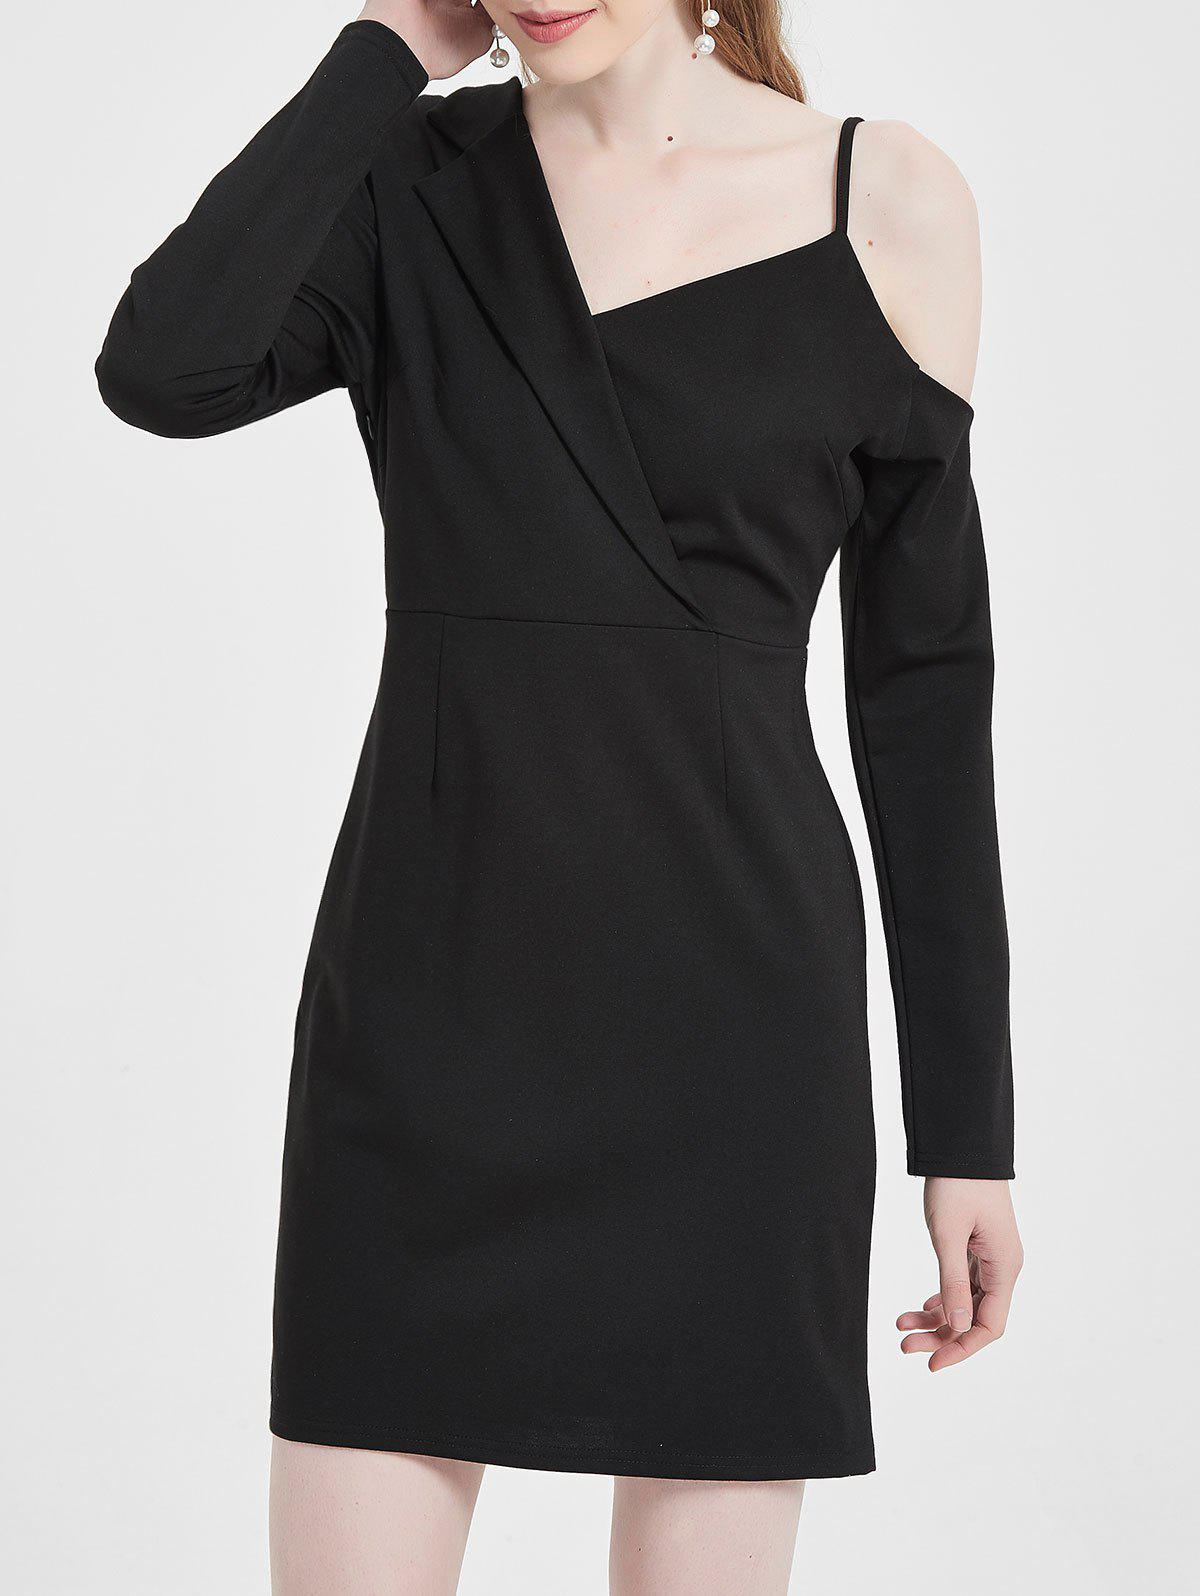 Discount Skew Neck Mini Blazer Dress